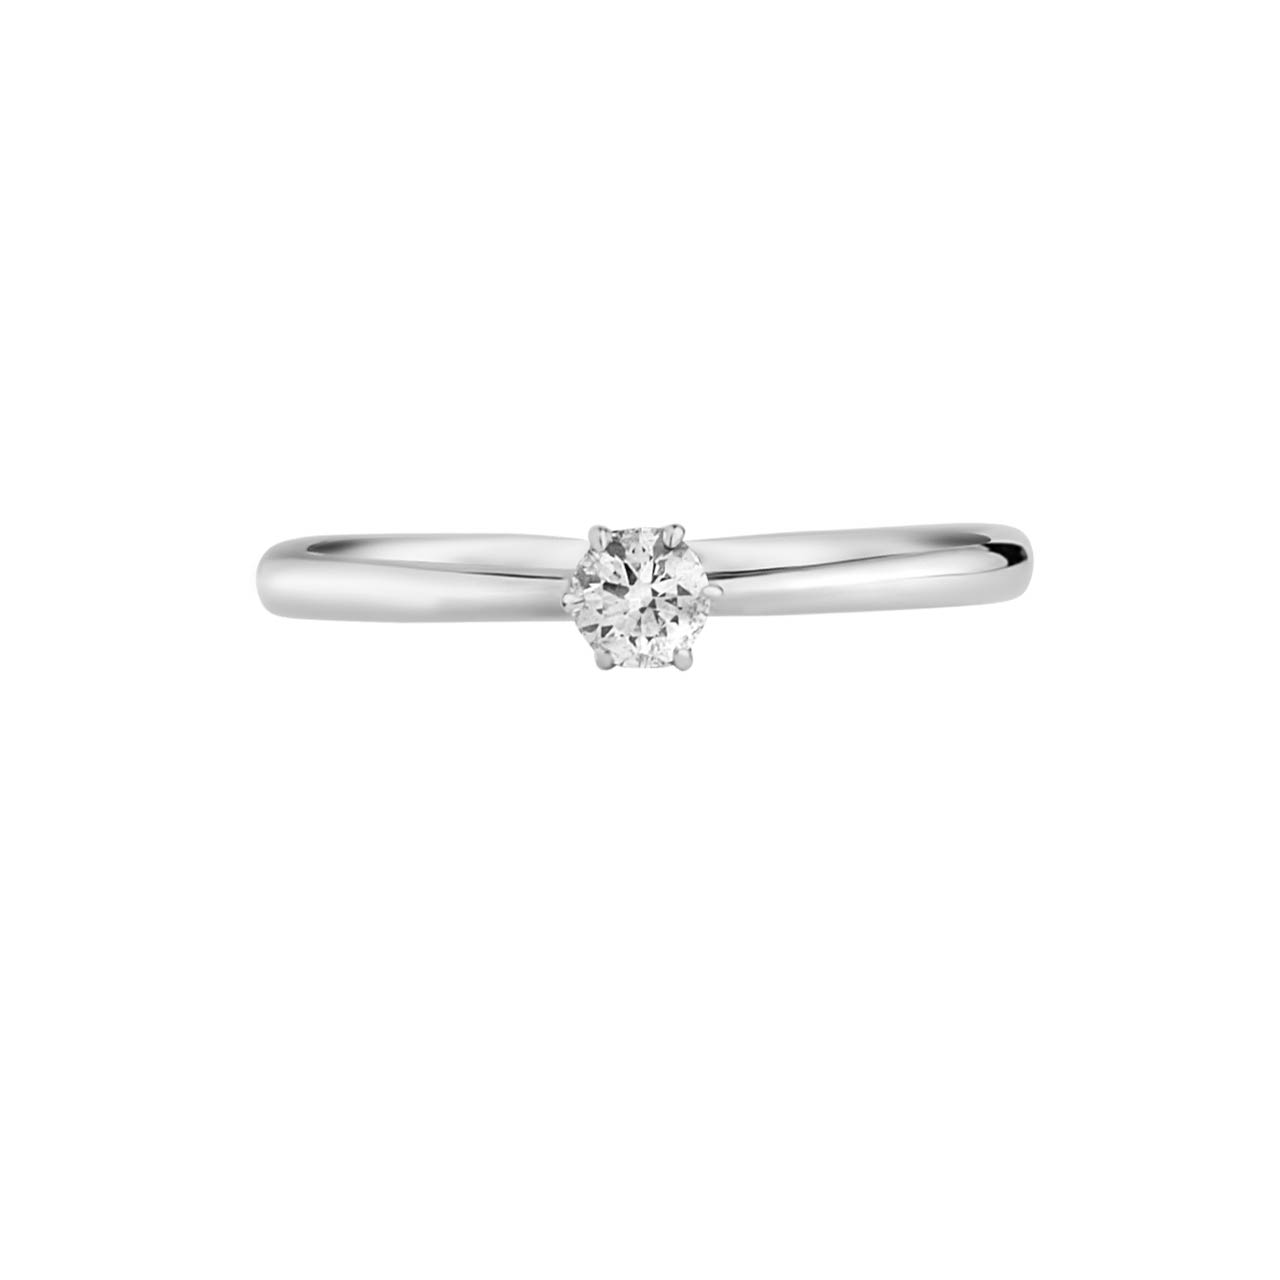 Solitaire Diamond 14kt White Gold Engagement Ring. View 3